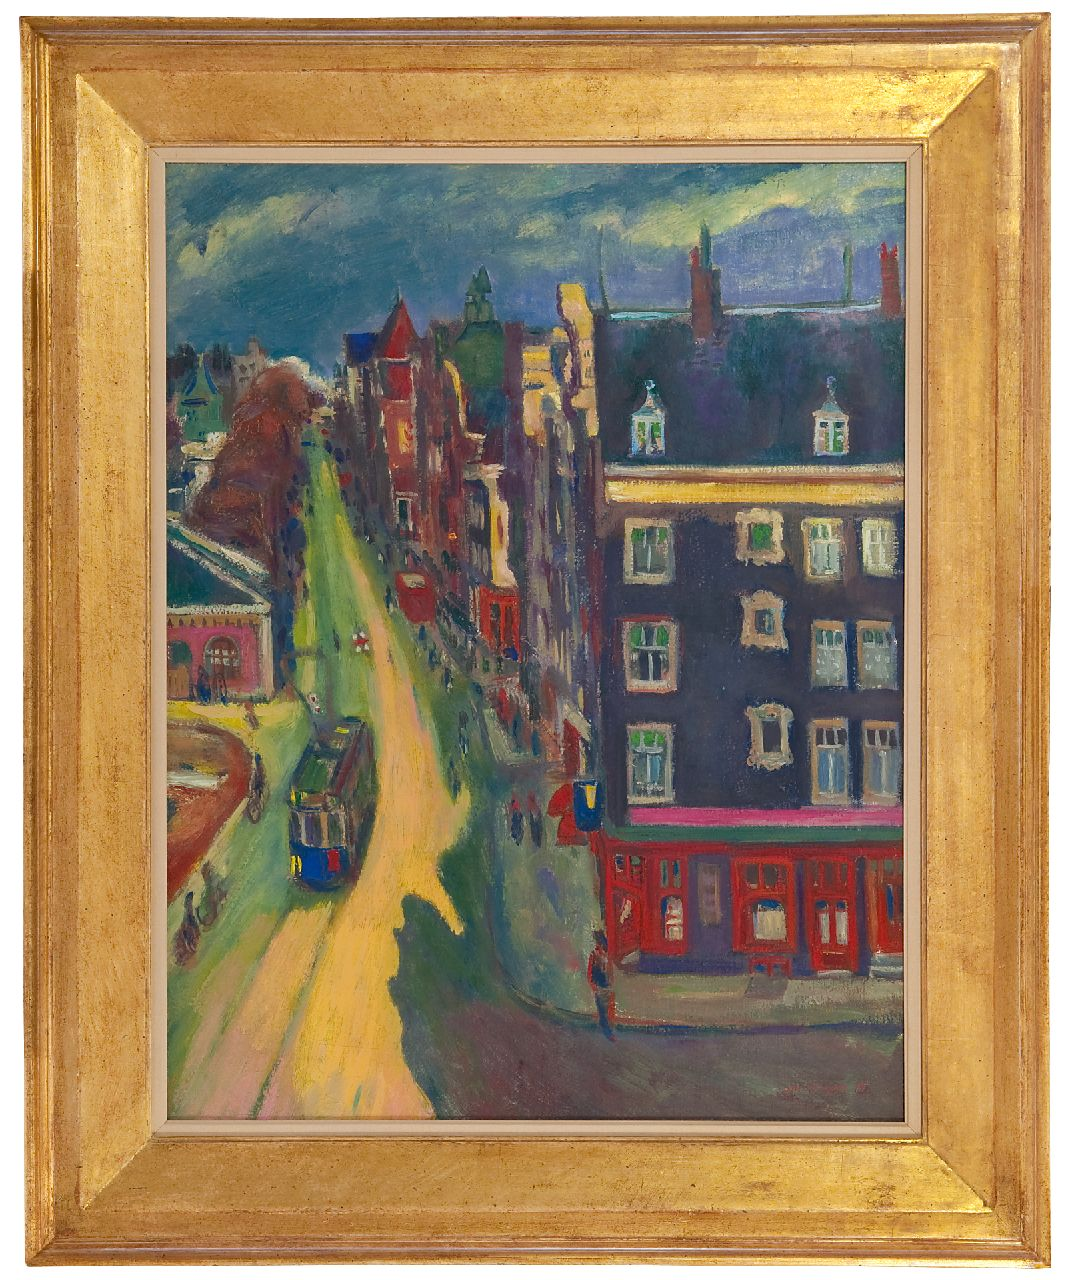 Wiegers J.  | Jan Wiegers | Paintings offered for sale | The Gelderse kade, Amsterdam, oil on canvas 70.2 x 54.7 cm, signed l.r. and dated '35